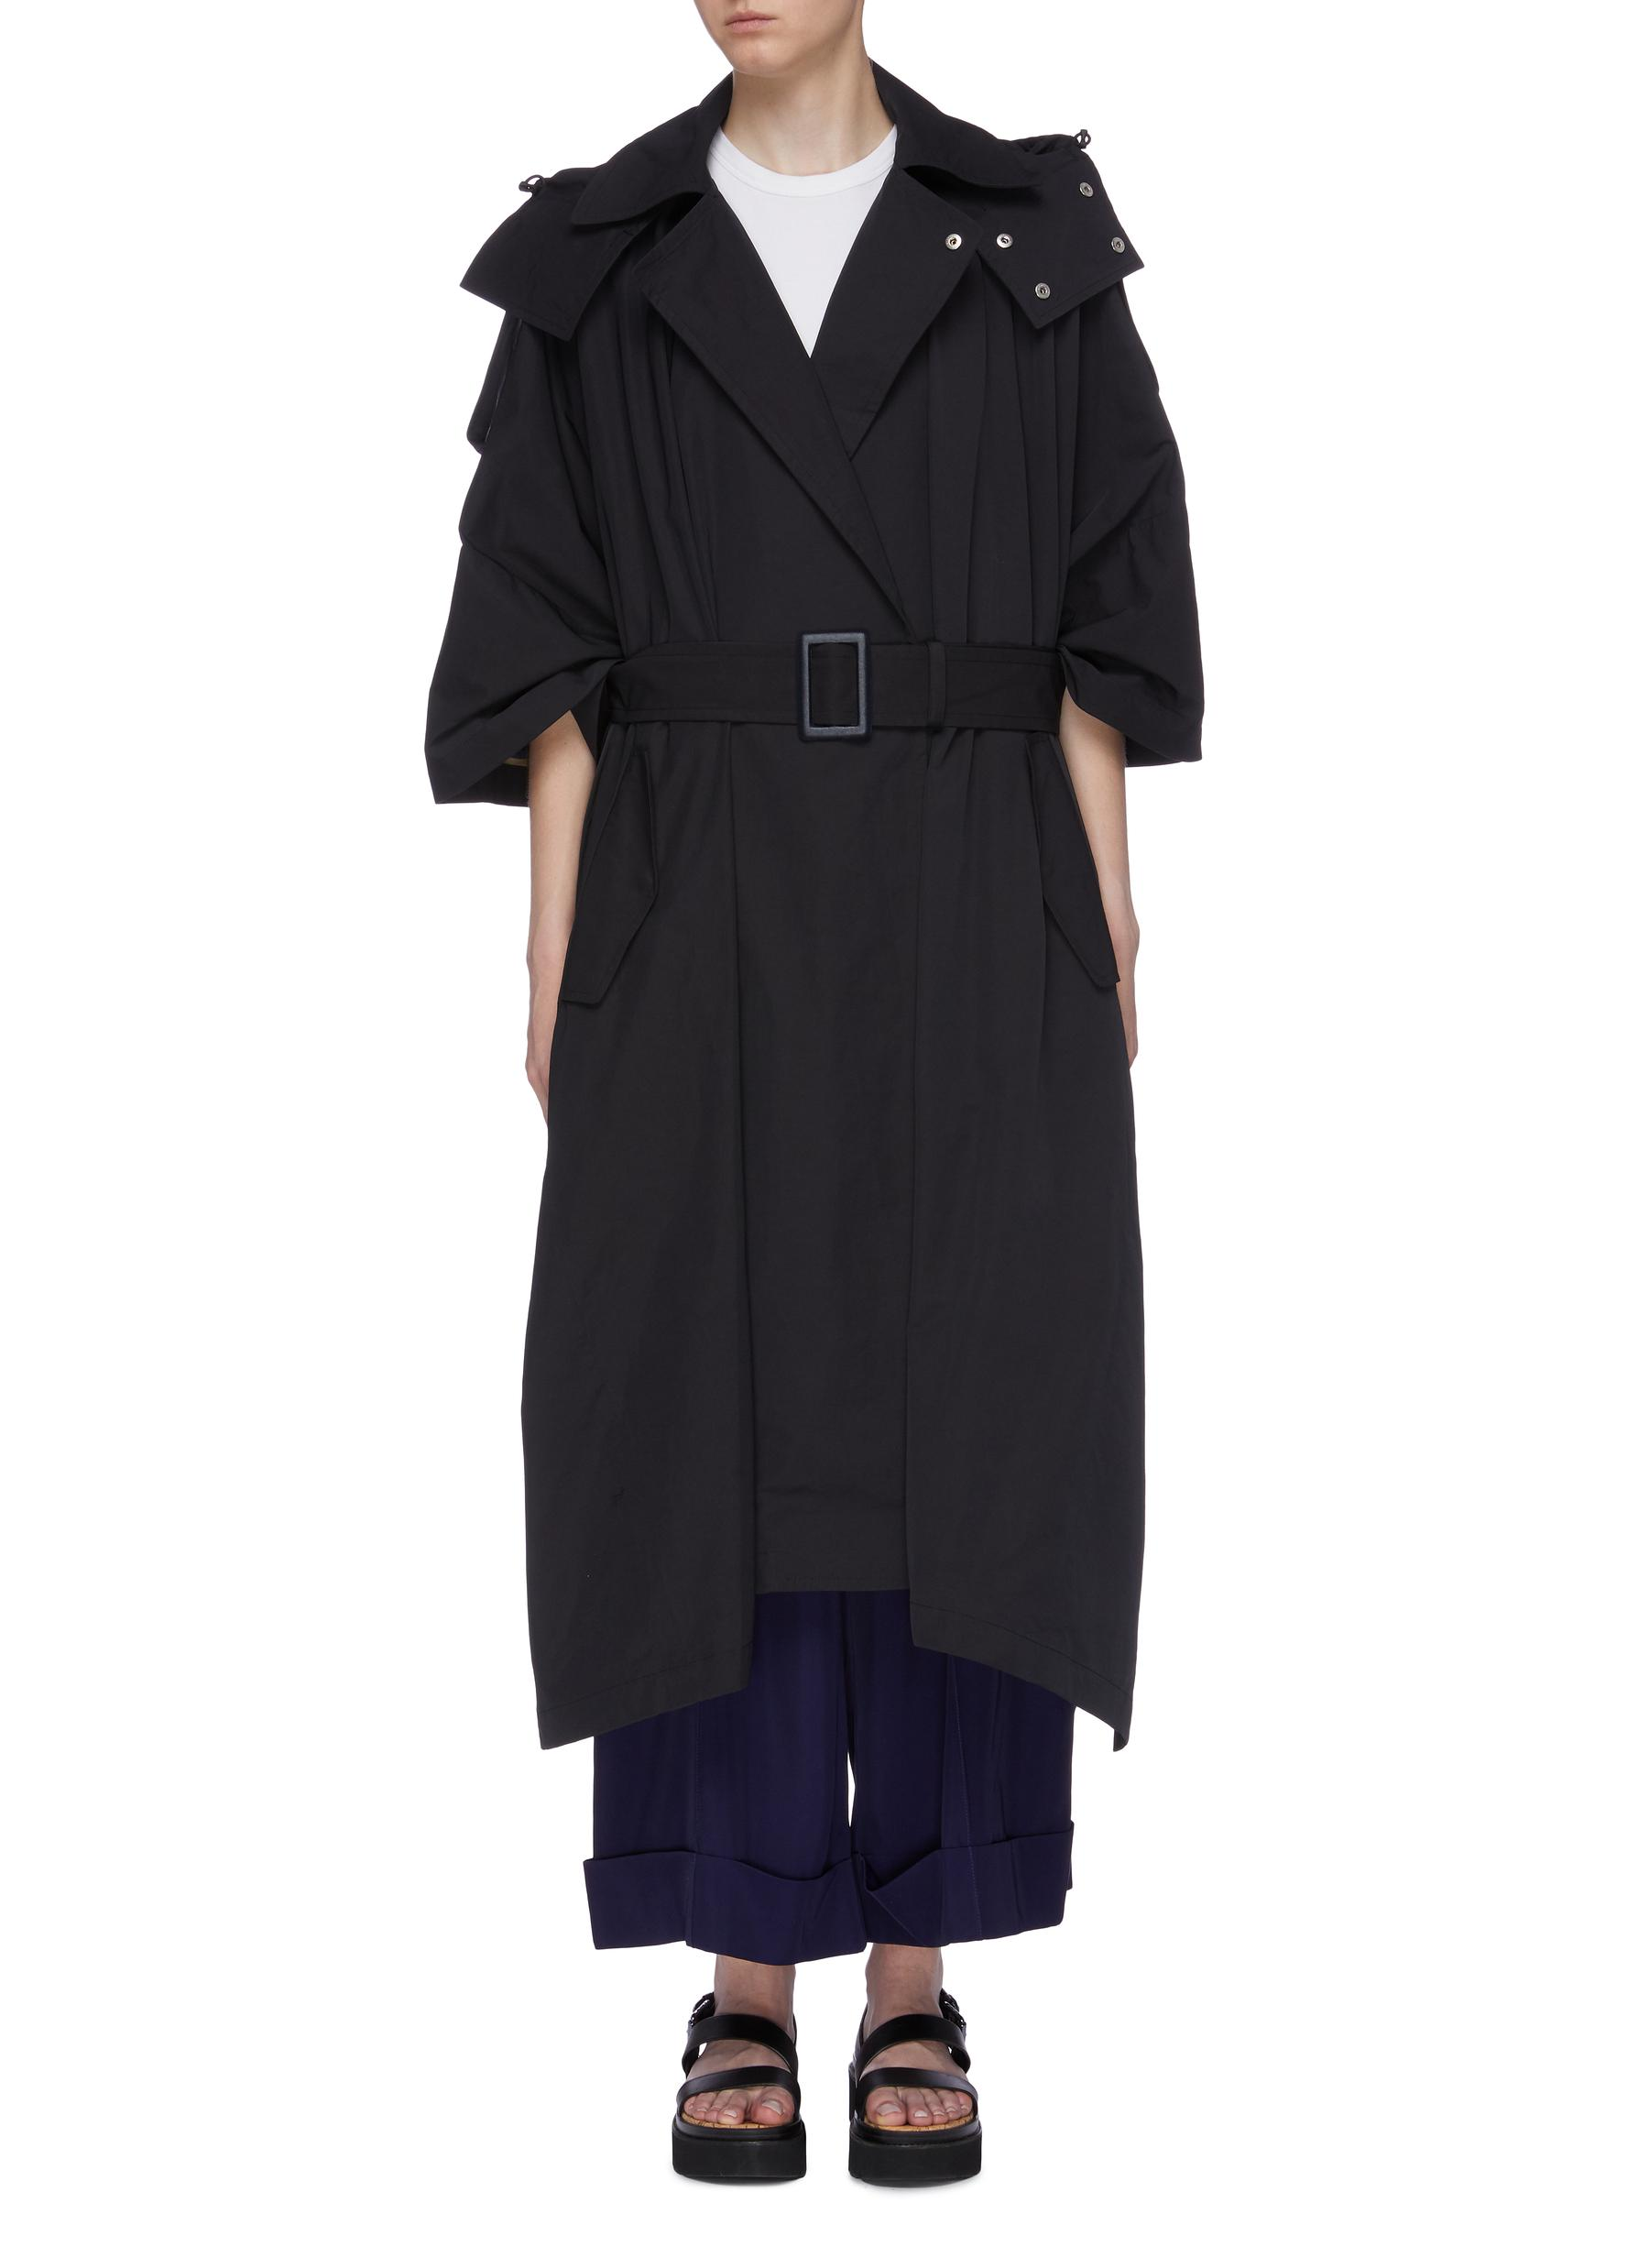 Belted hooded trench coat by Toga Archives